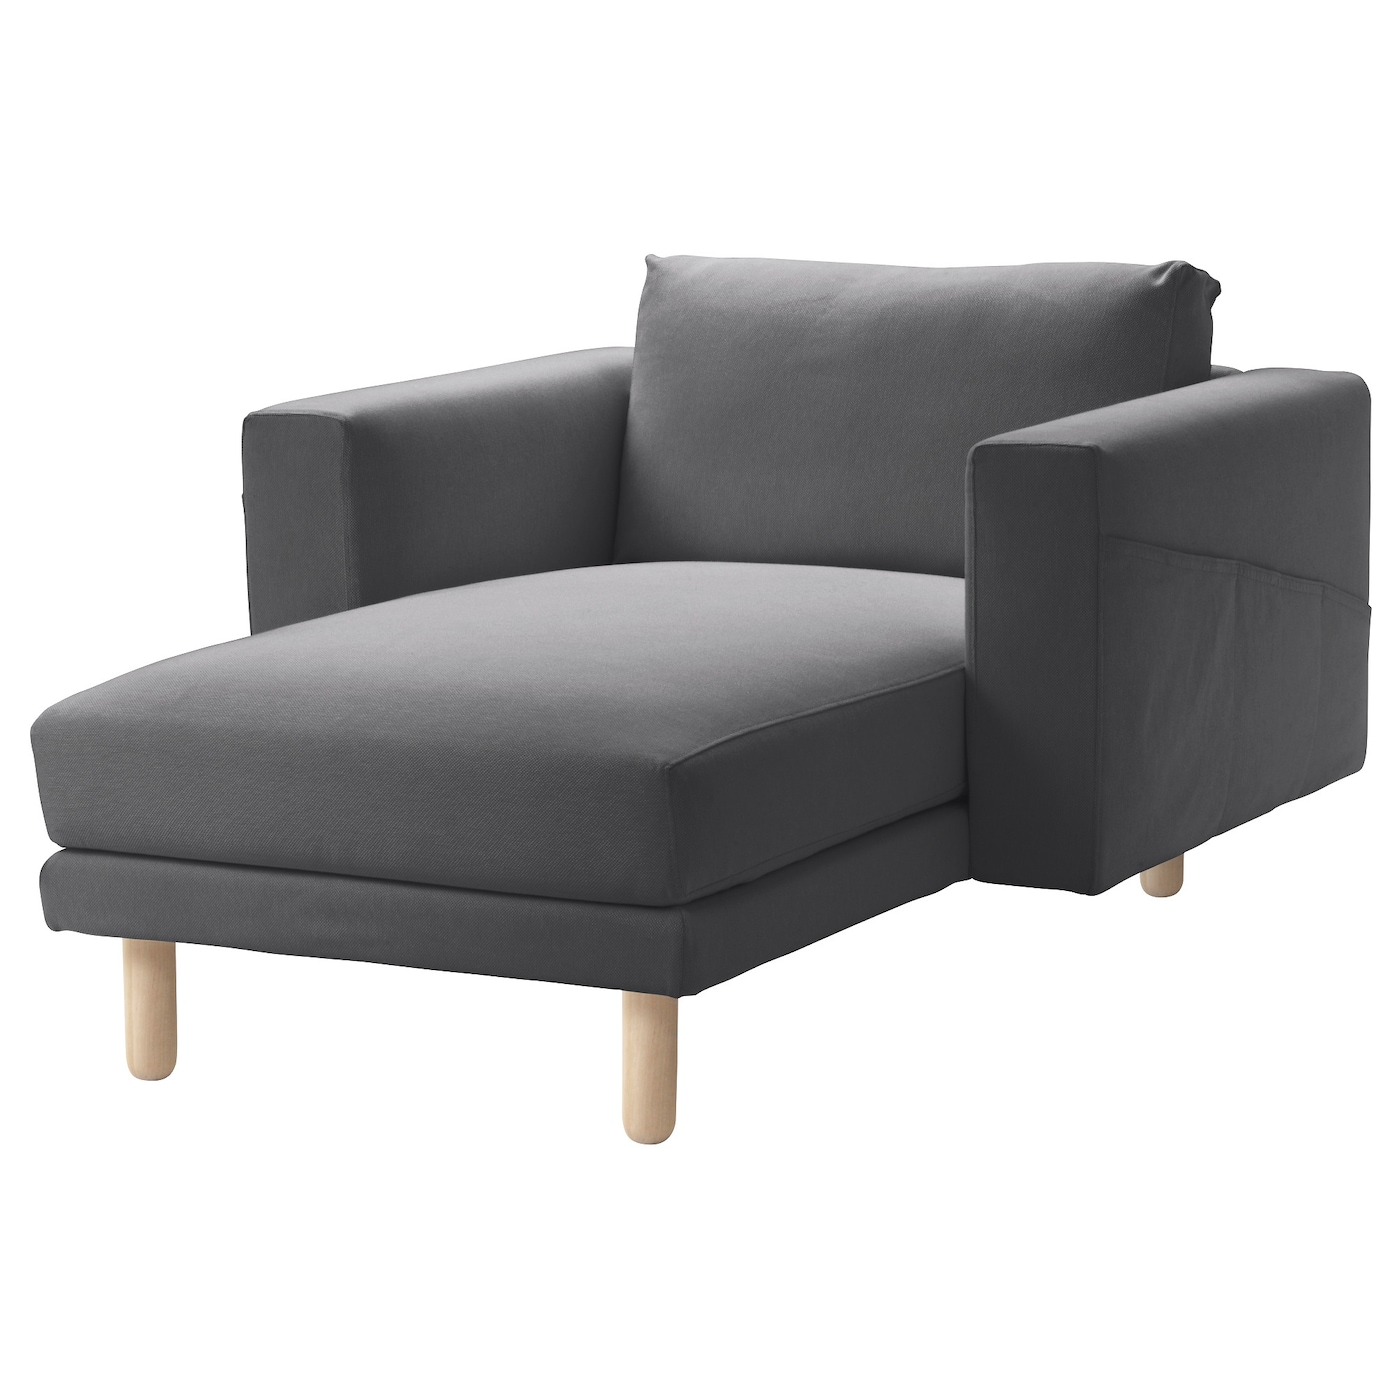 Norsborg chaise longue finnsta dark grey birch ikea for Oferta sofa cama chaise longue